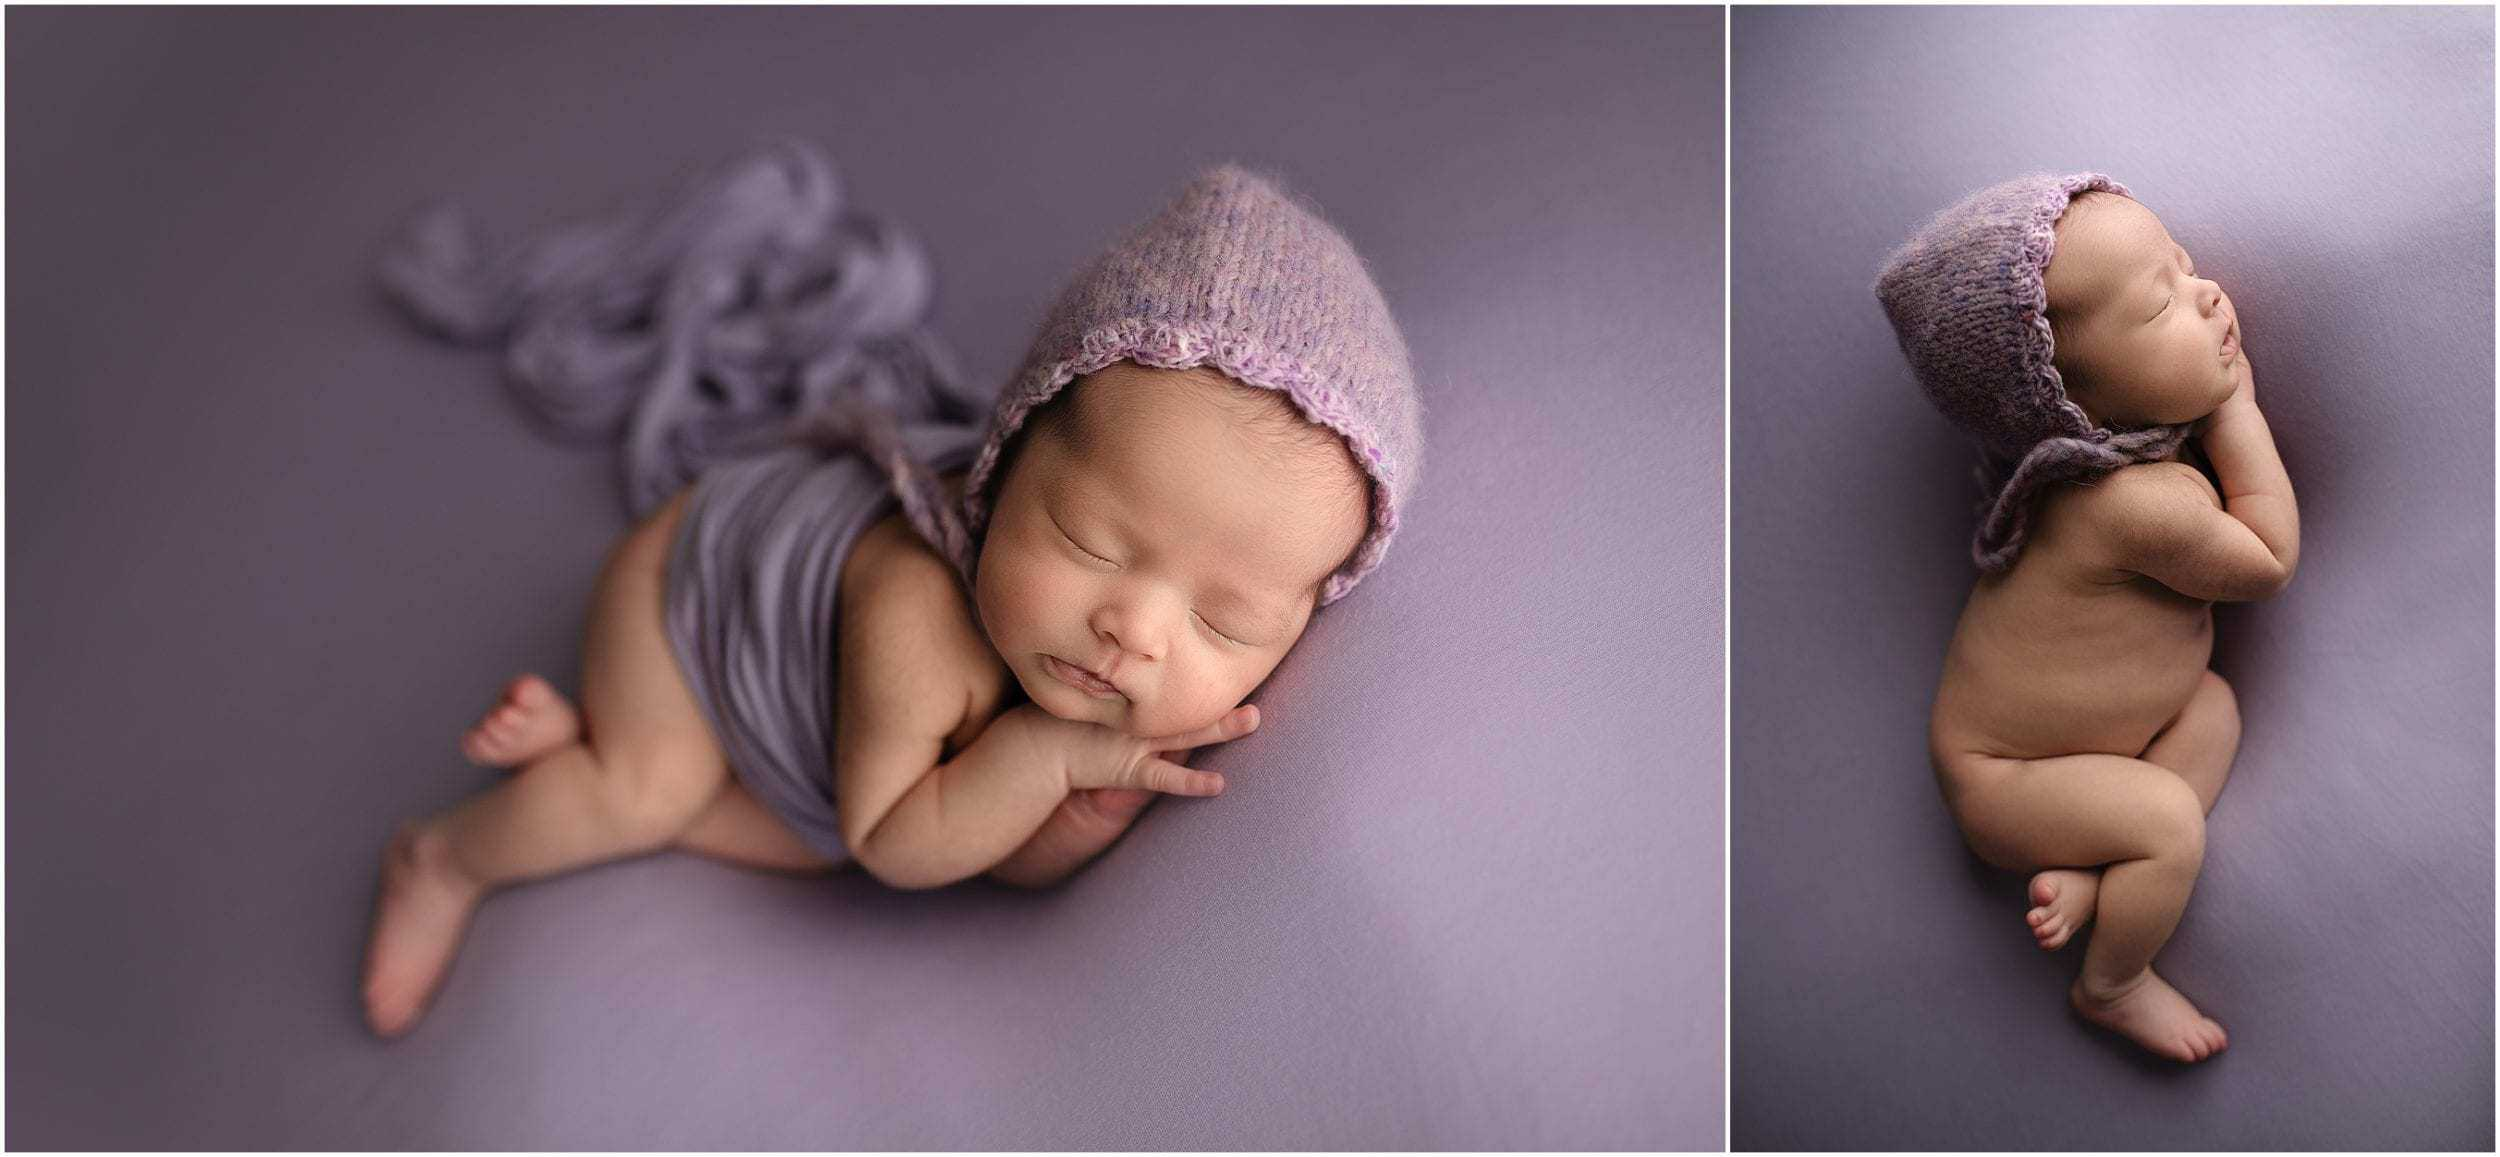 cincinnati newborn photographer takes pictures of baby on lavender wearing bonnet